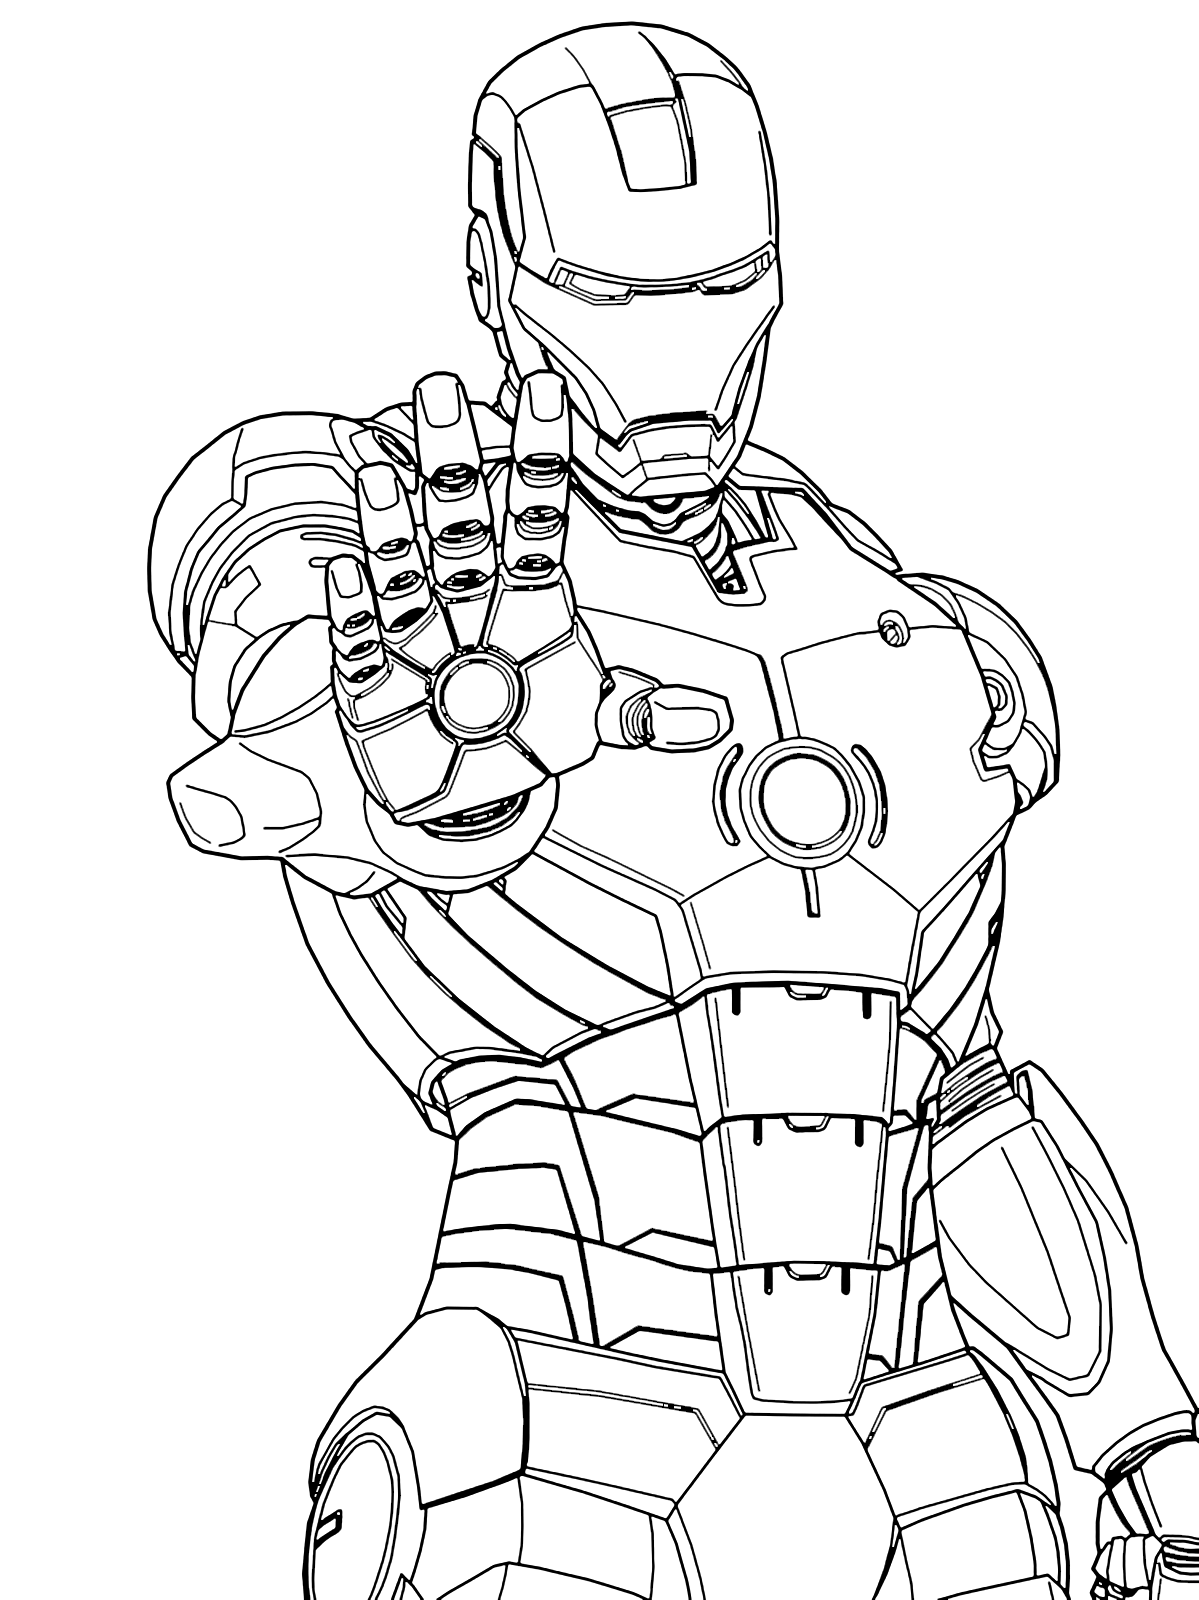 iron man colouring book coloring pages for kids free images iron man avengers book man colouring iron